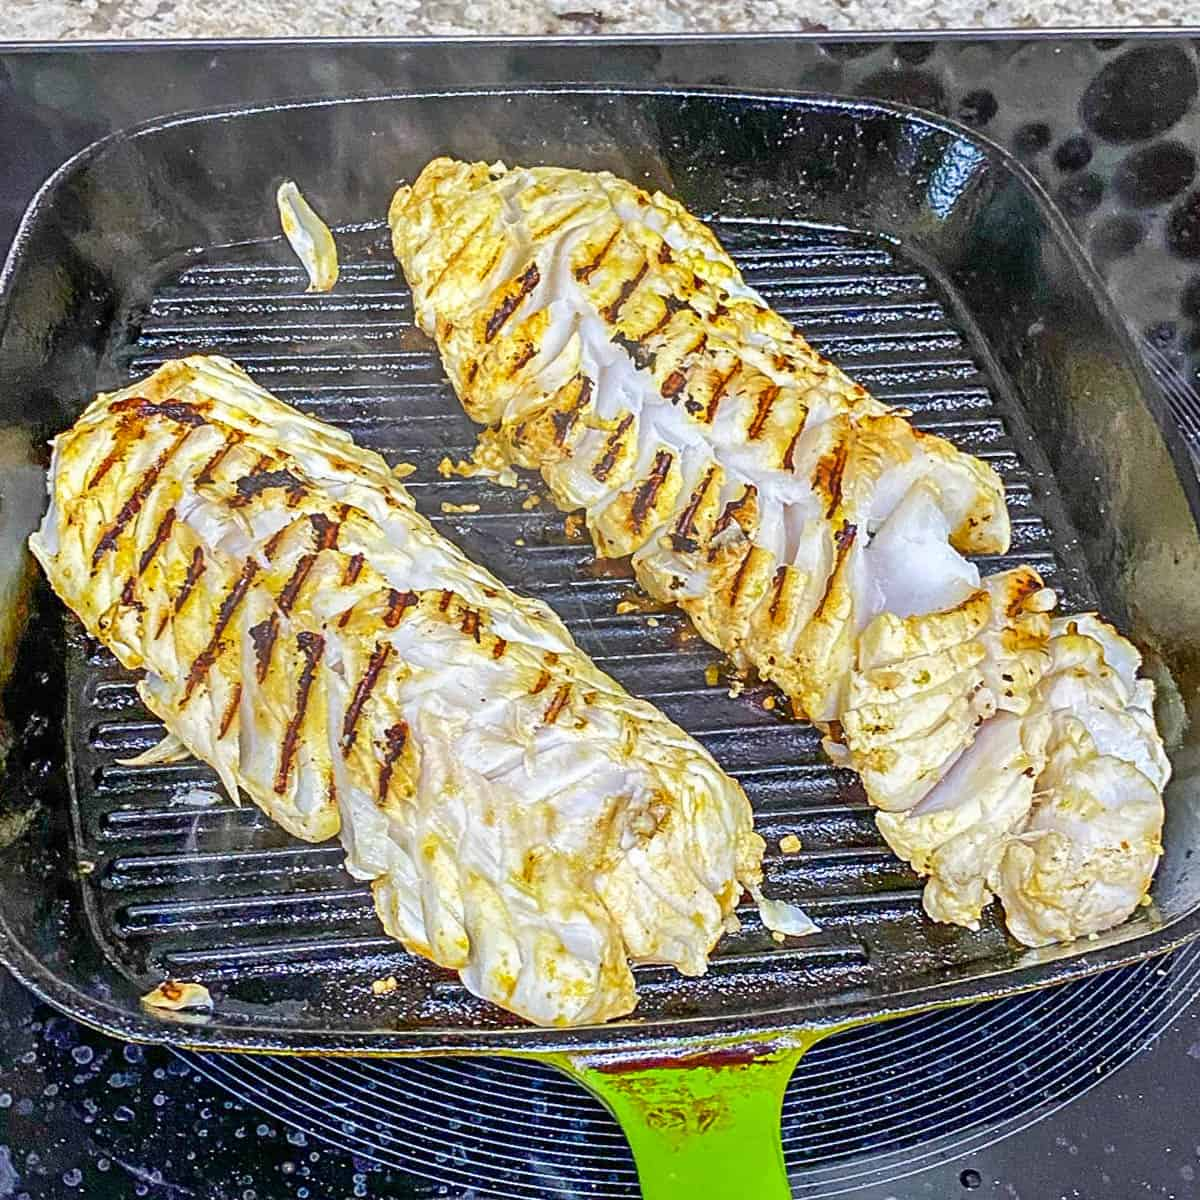 Two fish fillets turned after cooking on the first side with grill marks.